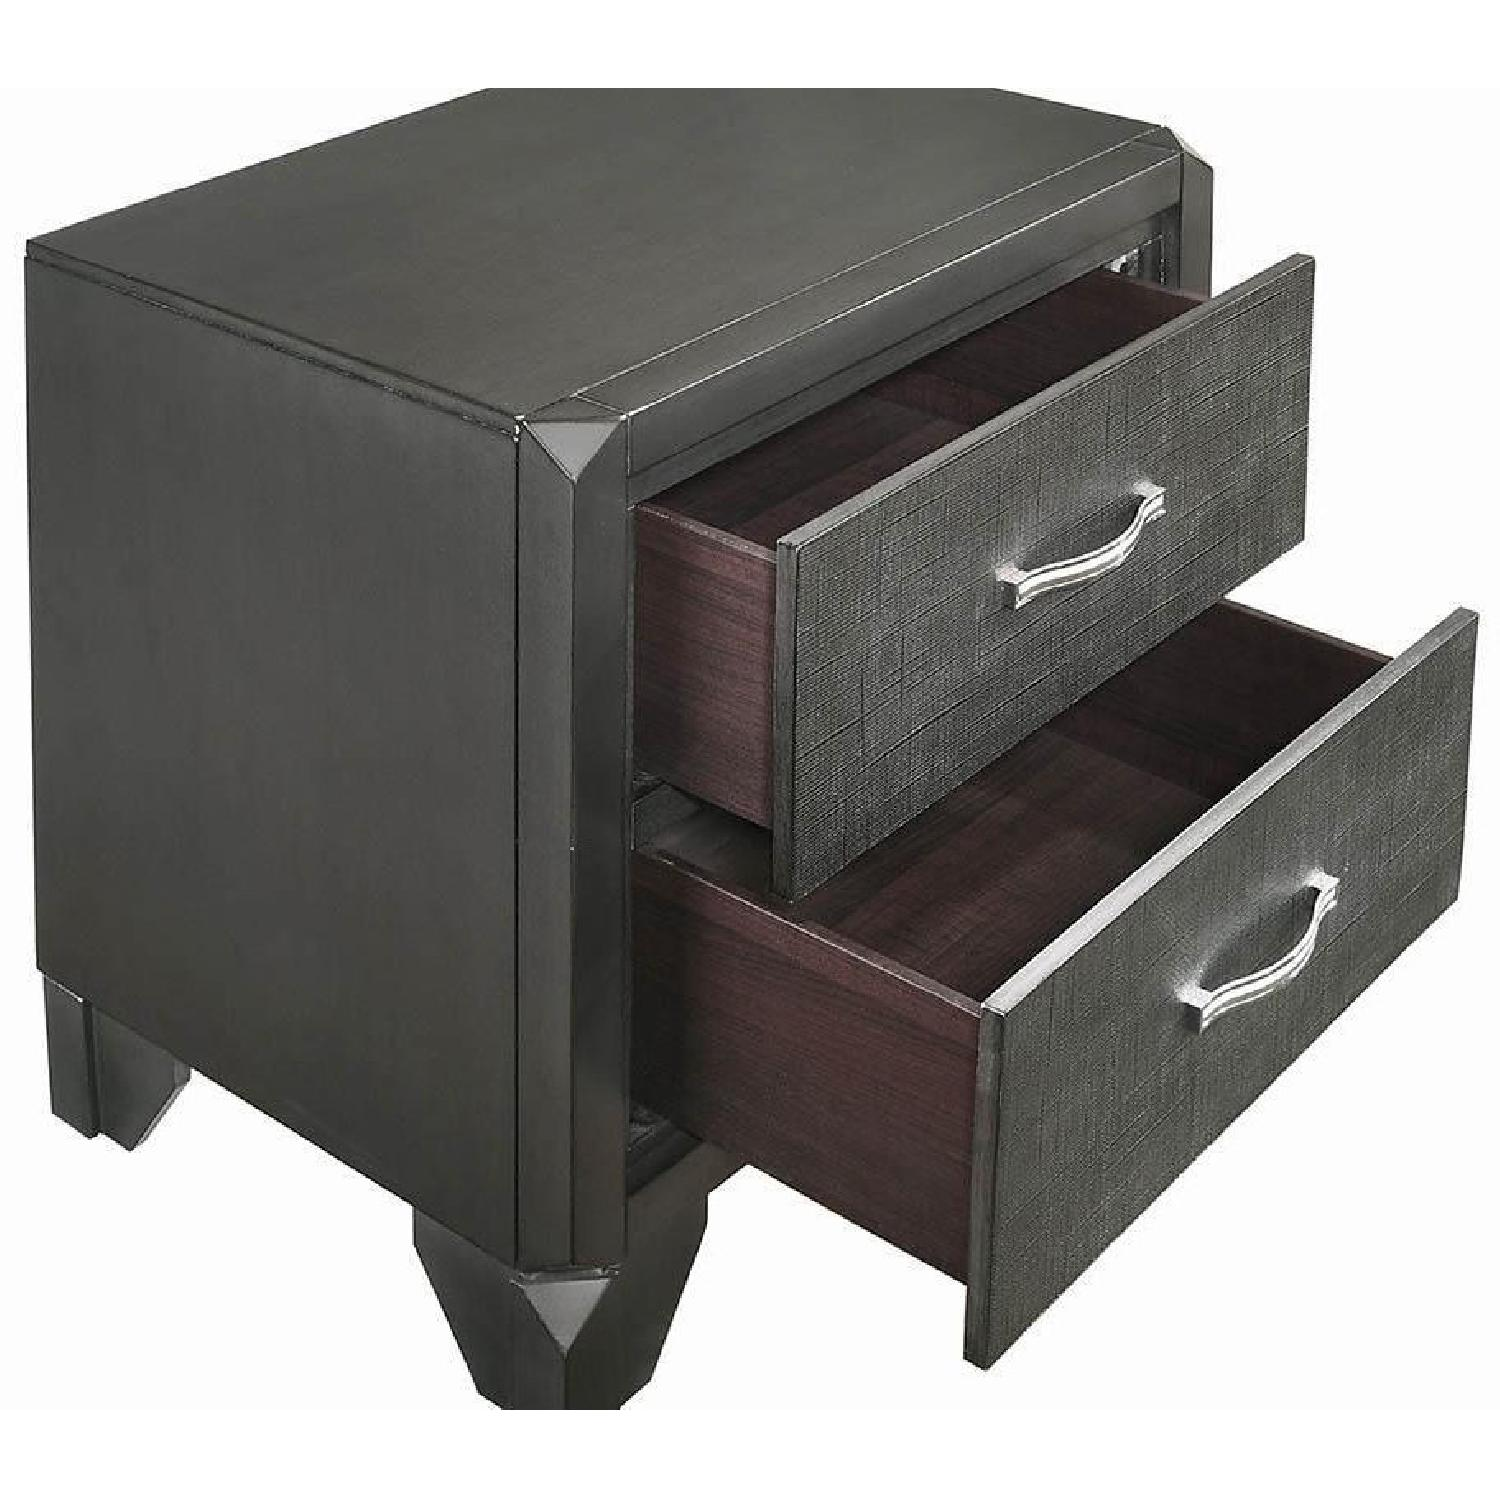 2-Drawer Nightstand in Caviar Finish w/ Woven Texture Front - image-3